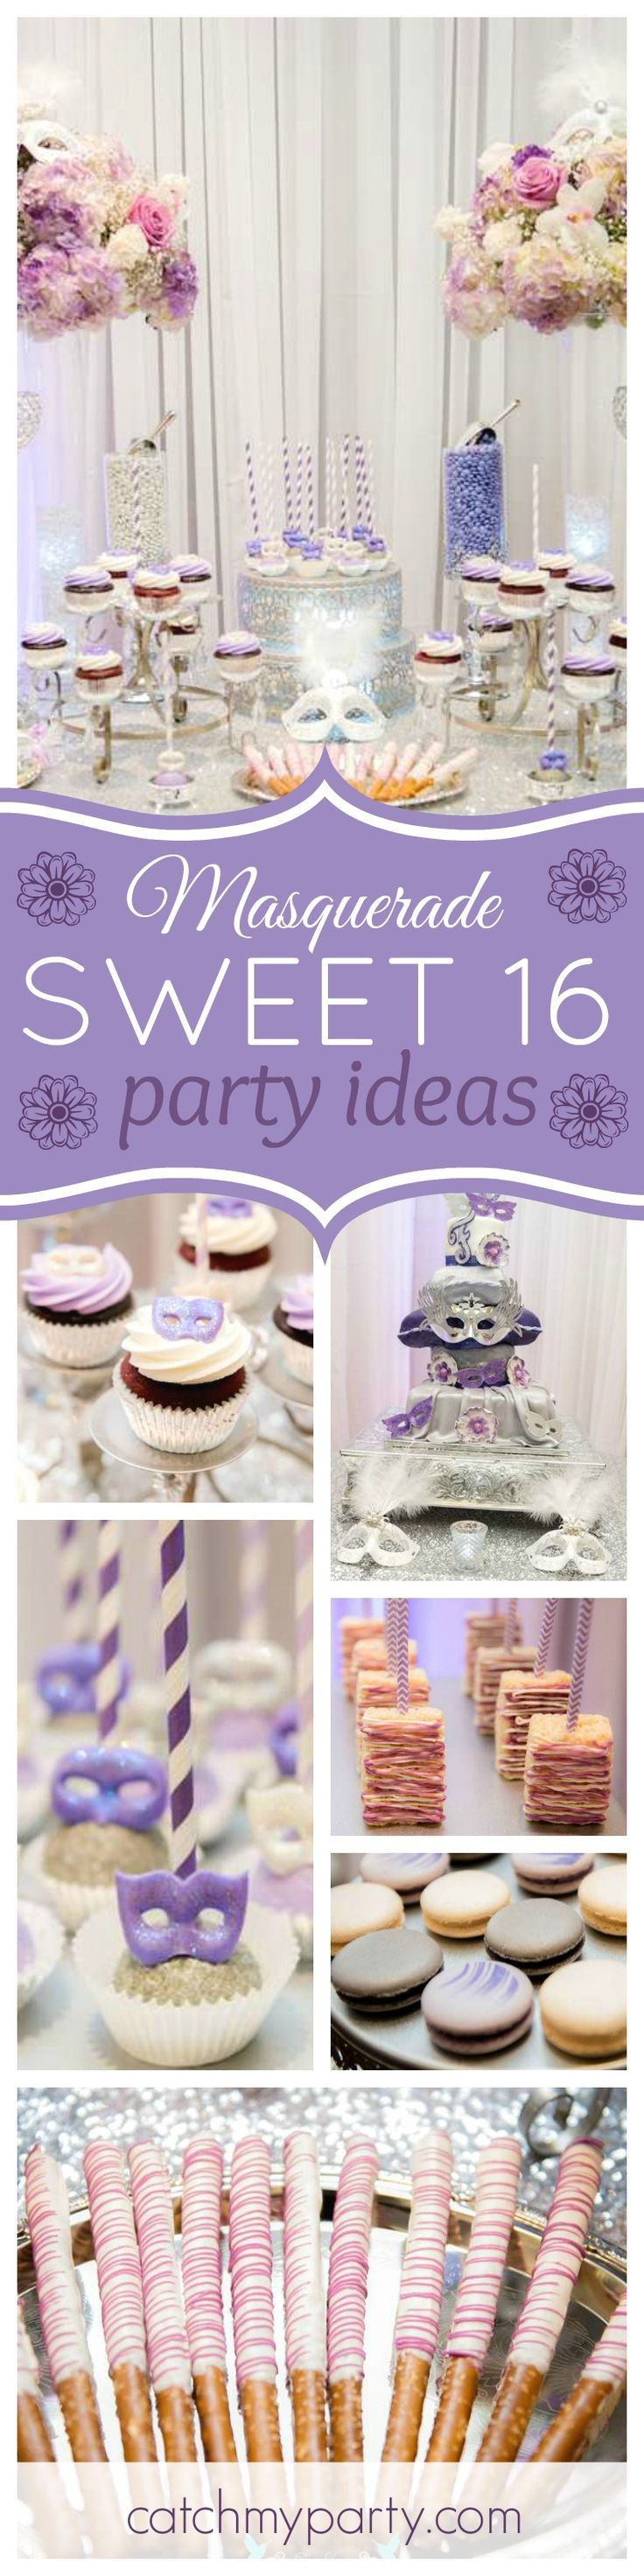 You don't want to miss this glamorous Sweet 16 Masquerade birthday party. The cake pops decorated with masks are fabulous!! See more party ideas and share yours at CatchMyParty.com